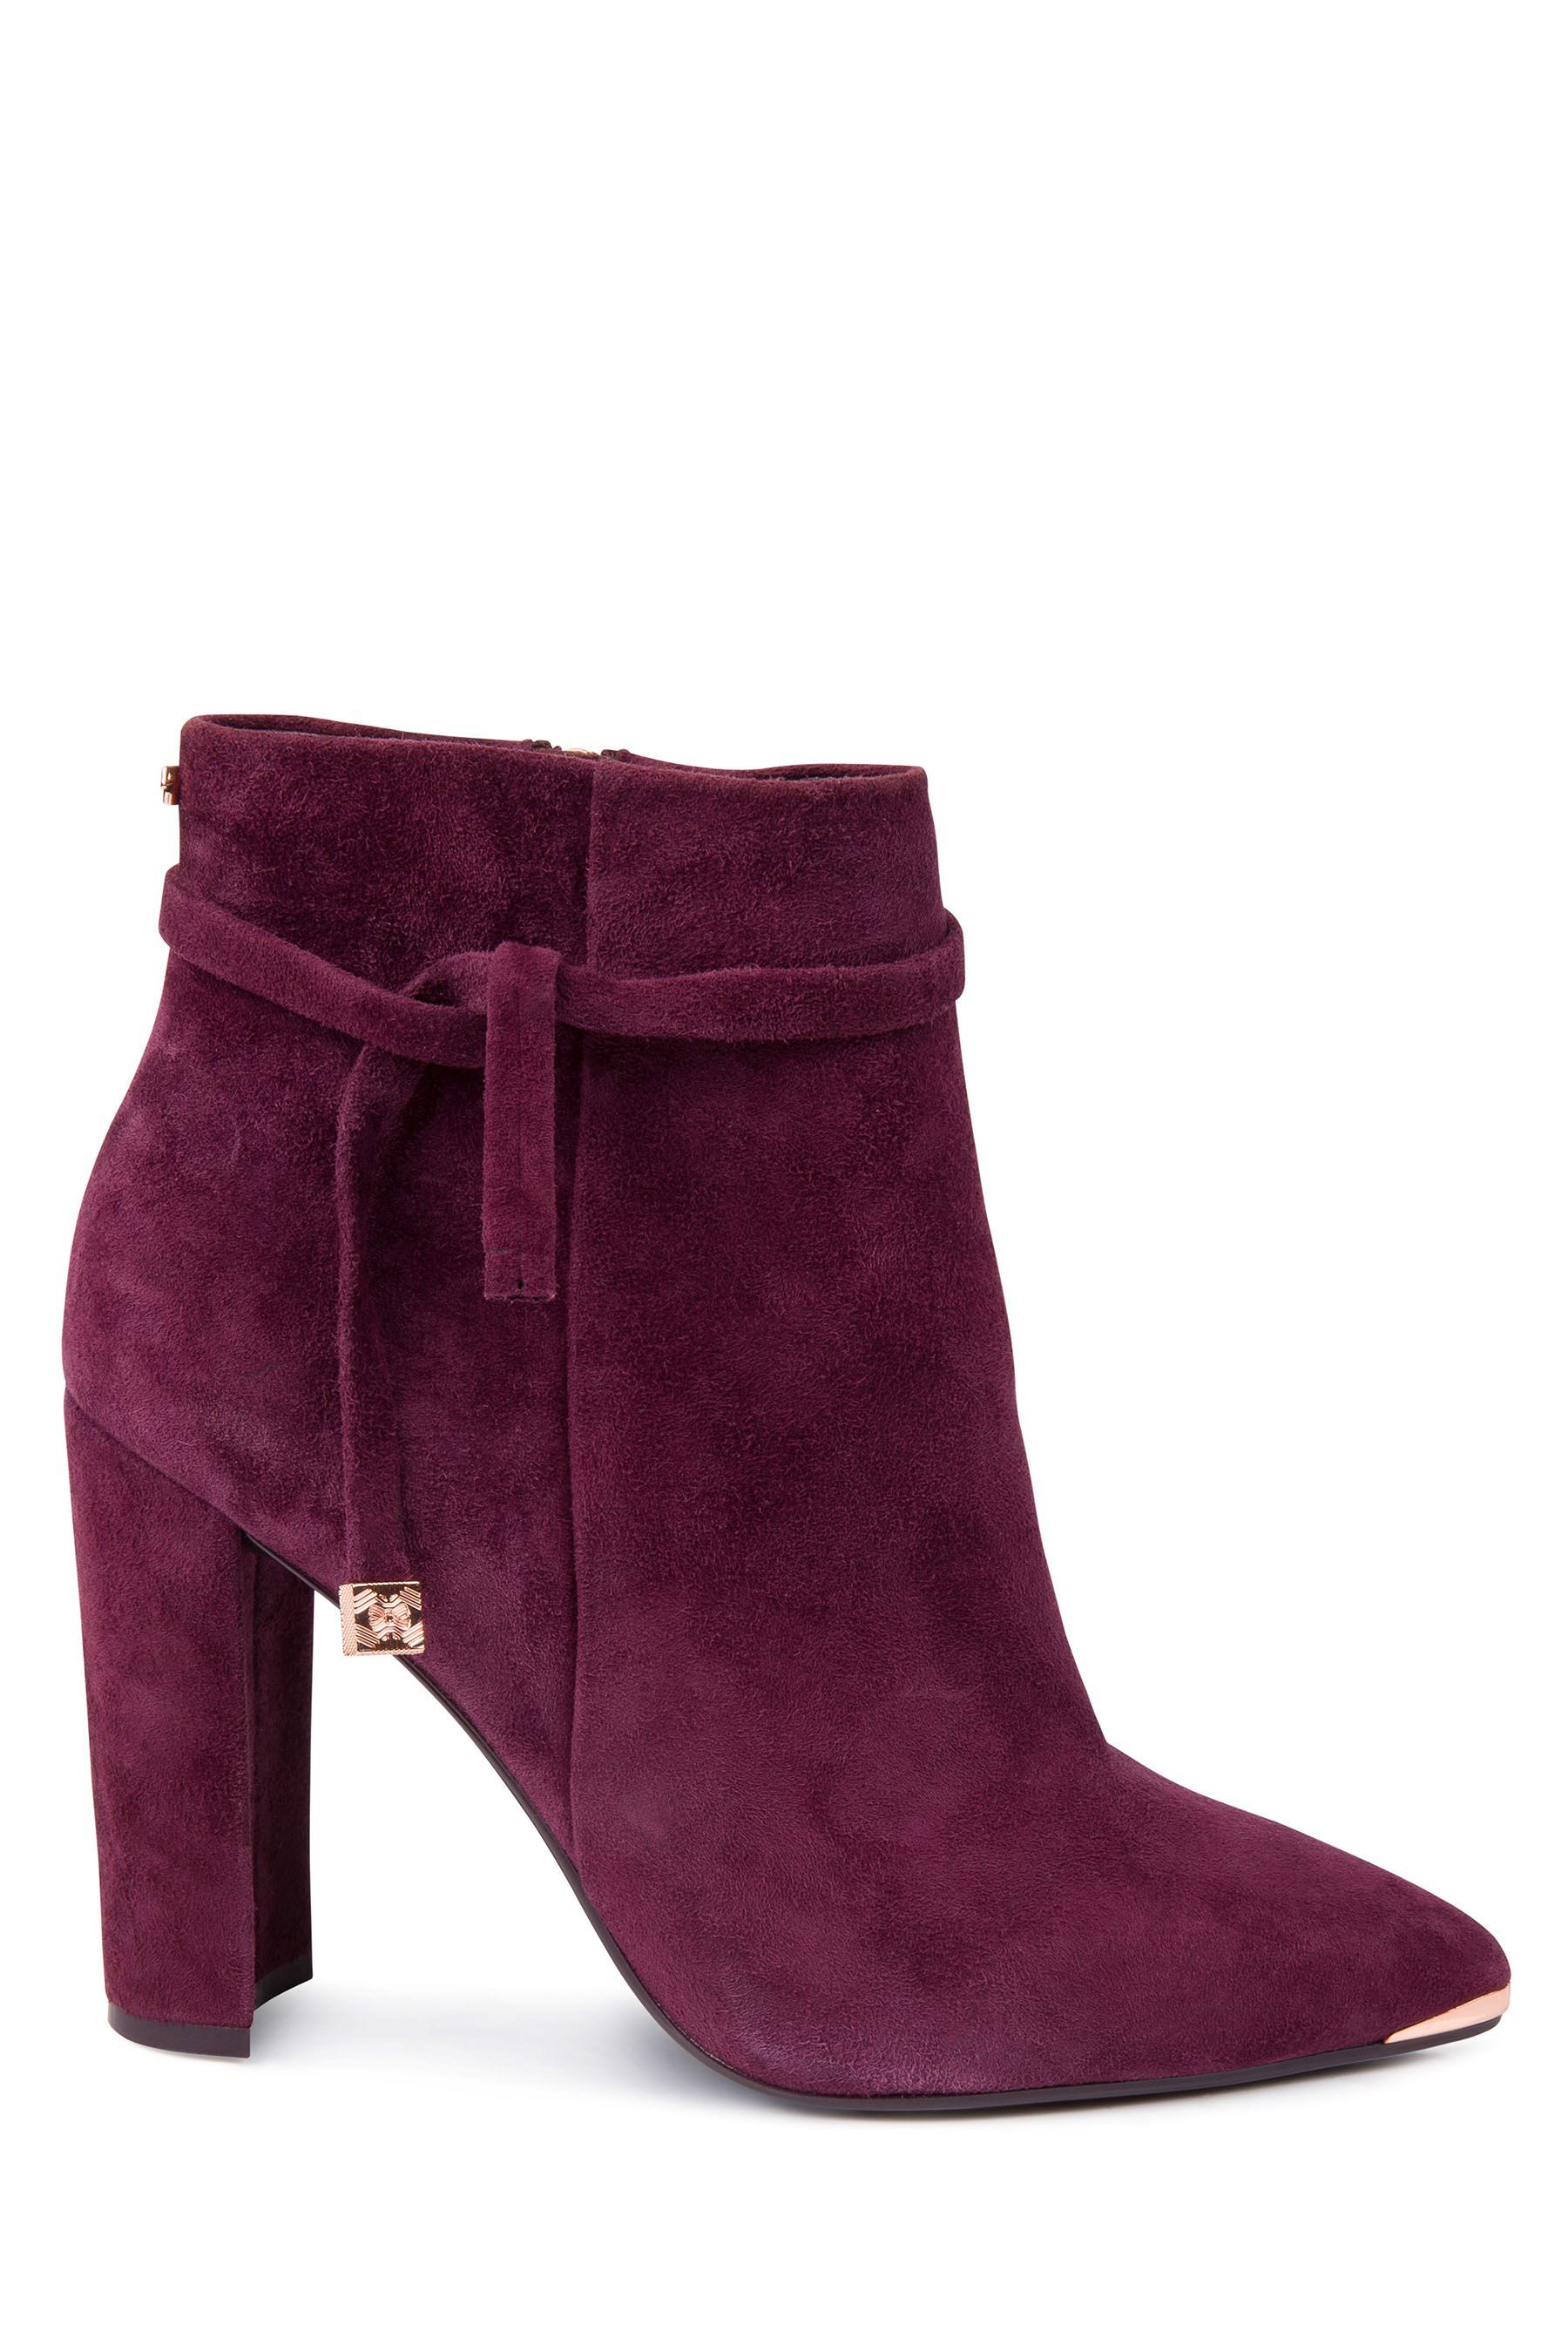 fba305a73cea Womens Ted Baker Burgundy Suede Qatena Block Heel Ankle Boot - Red ...